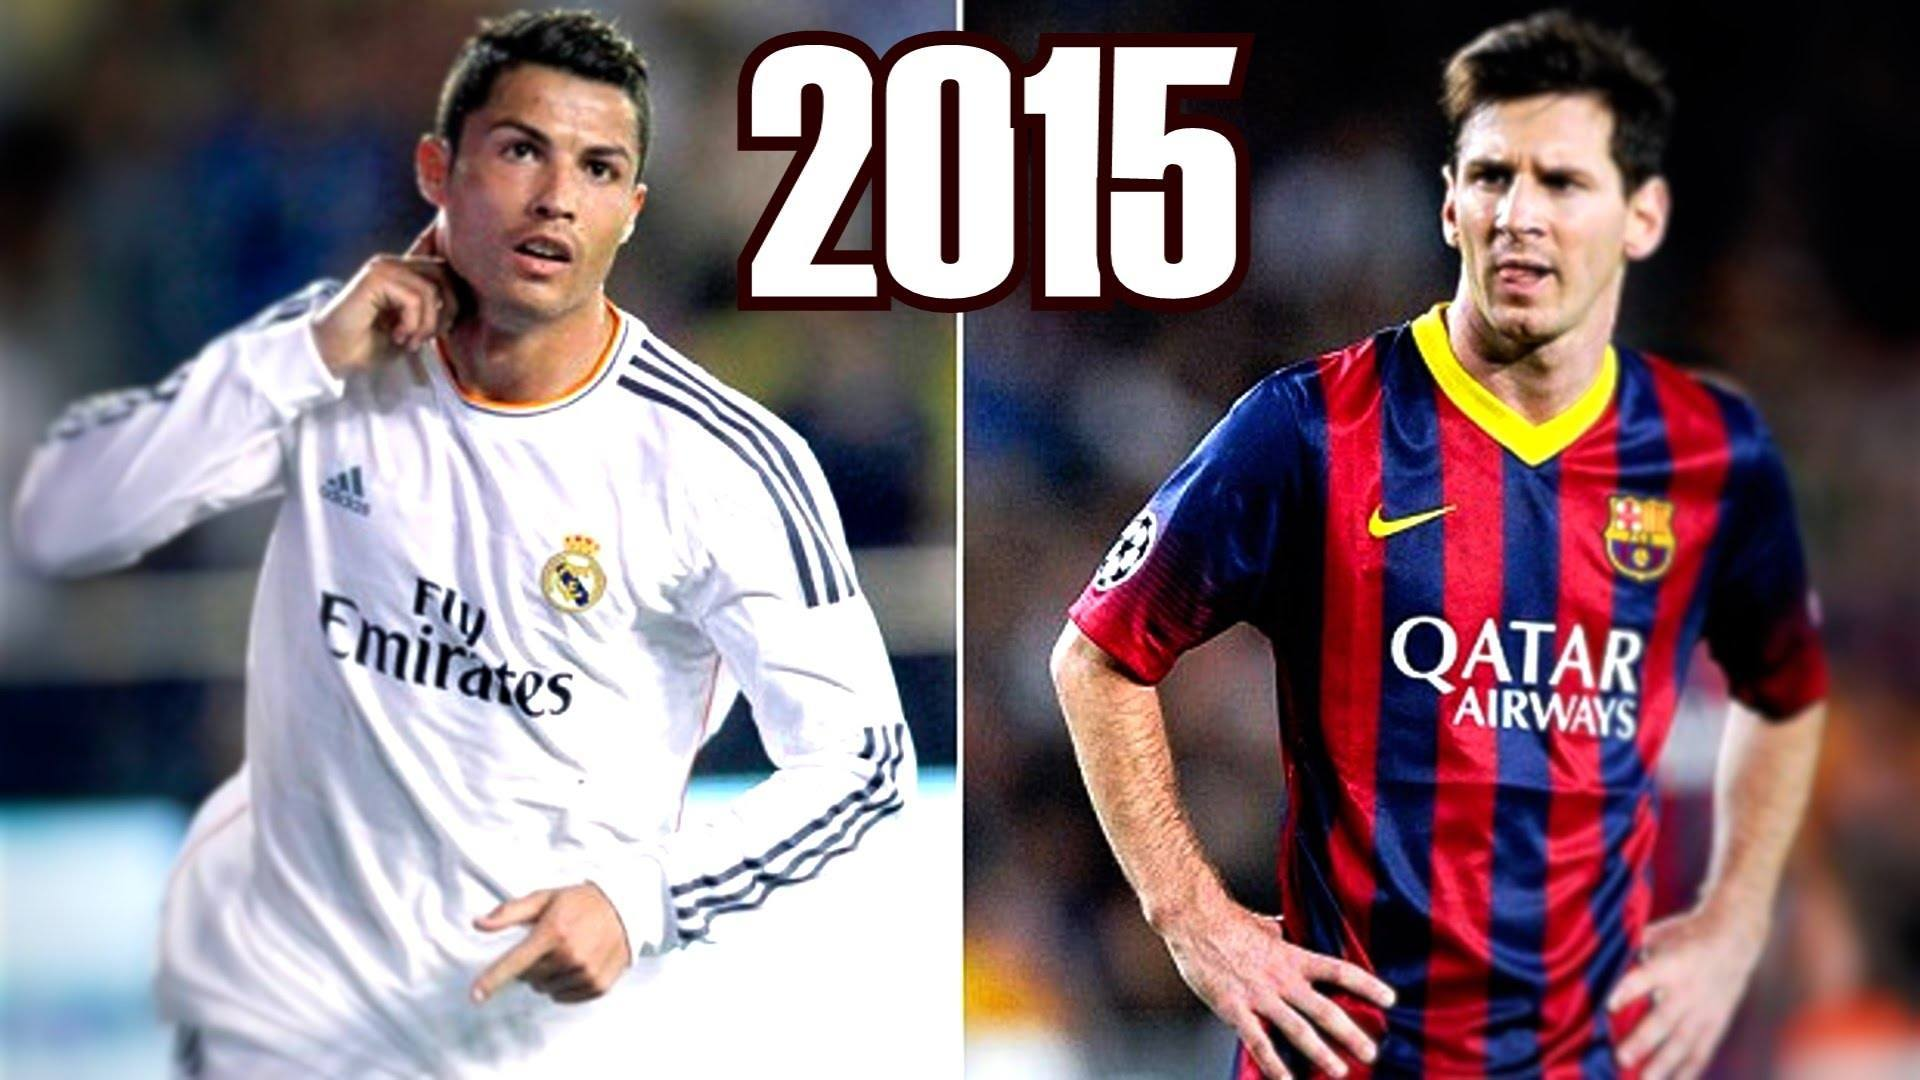 Lionel Messi vs Cristiano Ronaldo: Who has a better weaker foot? - Movie TV Tech Geeks News